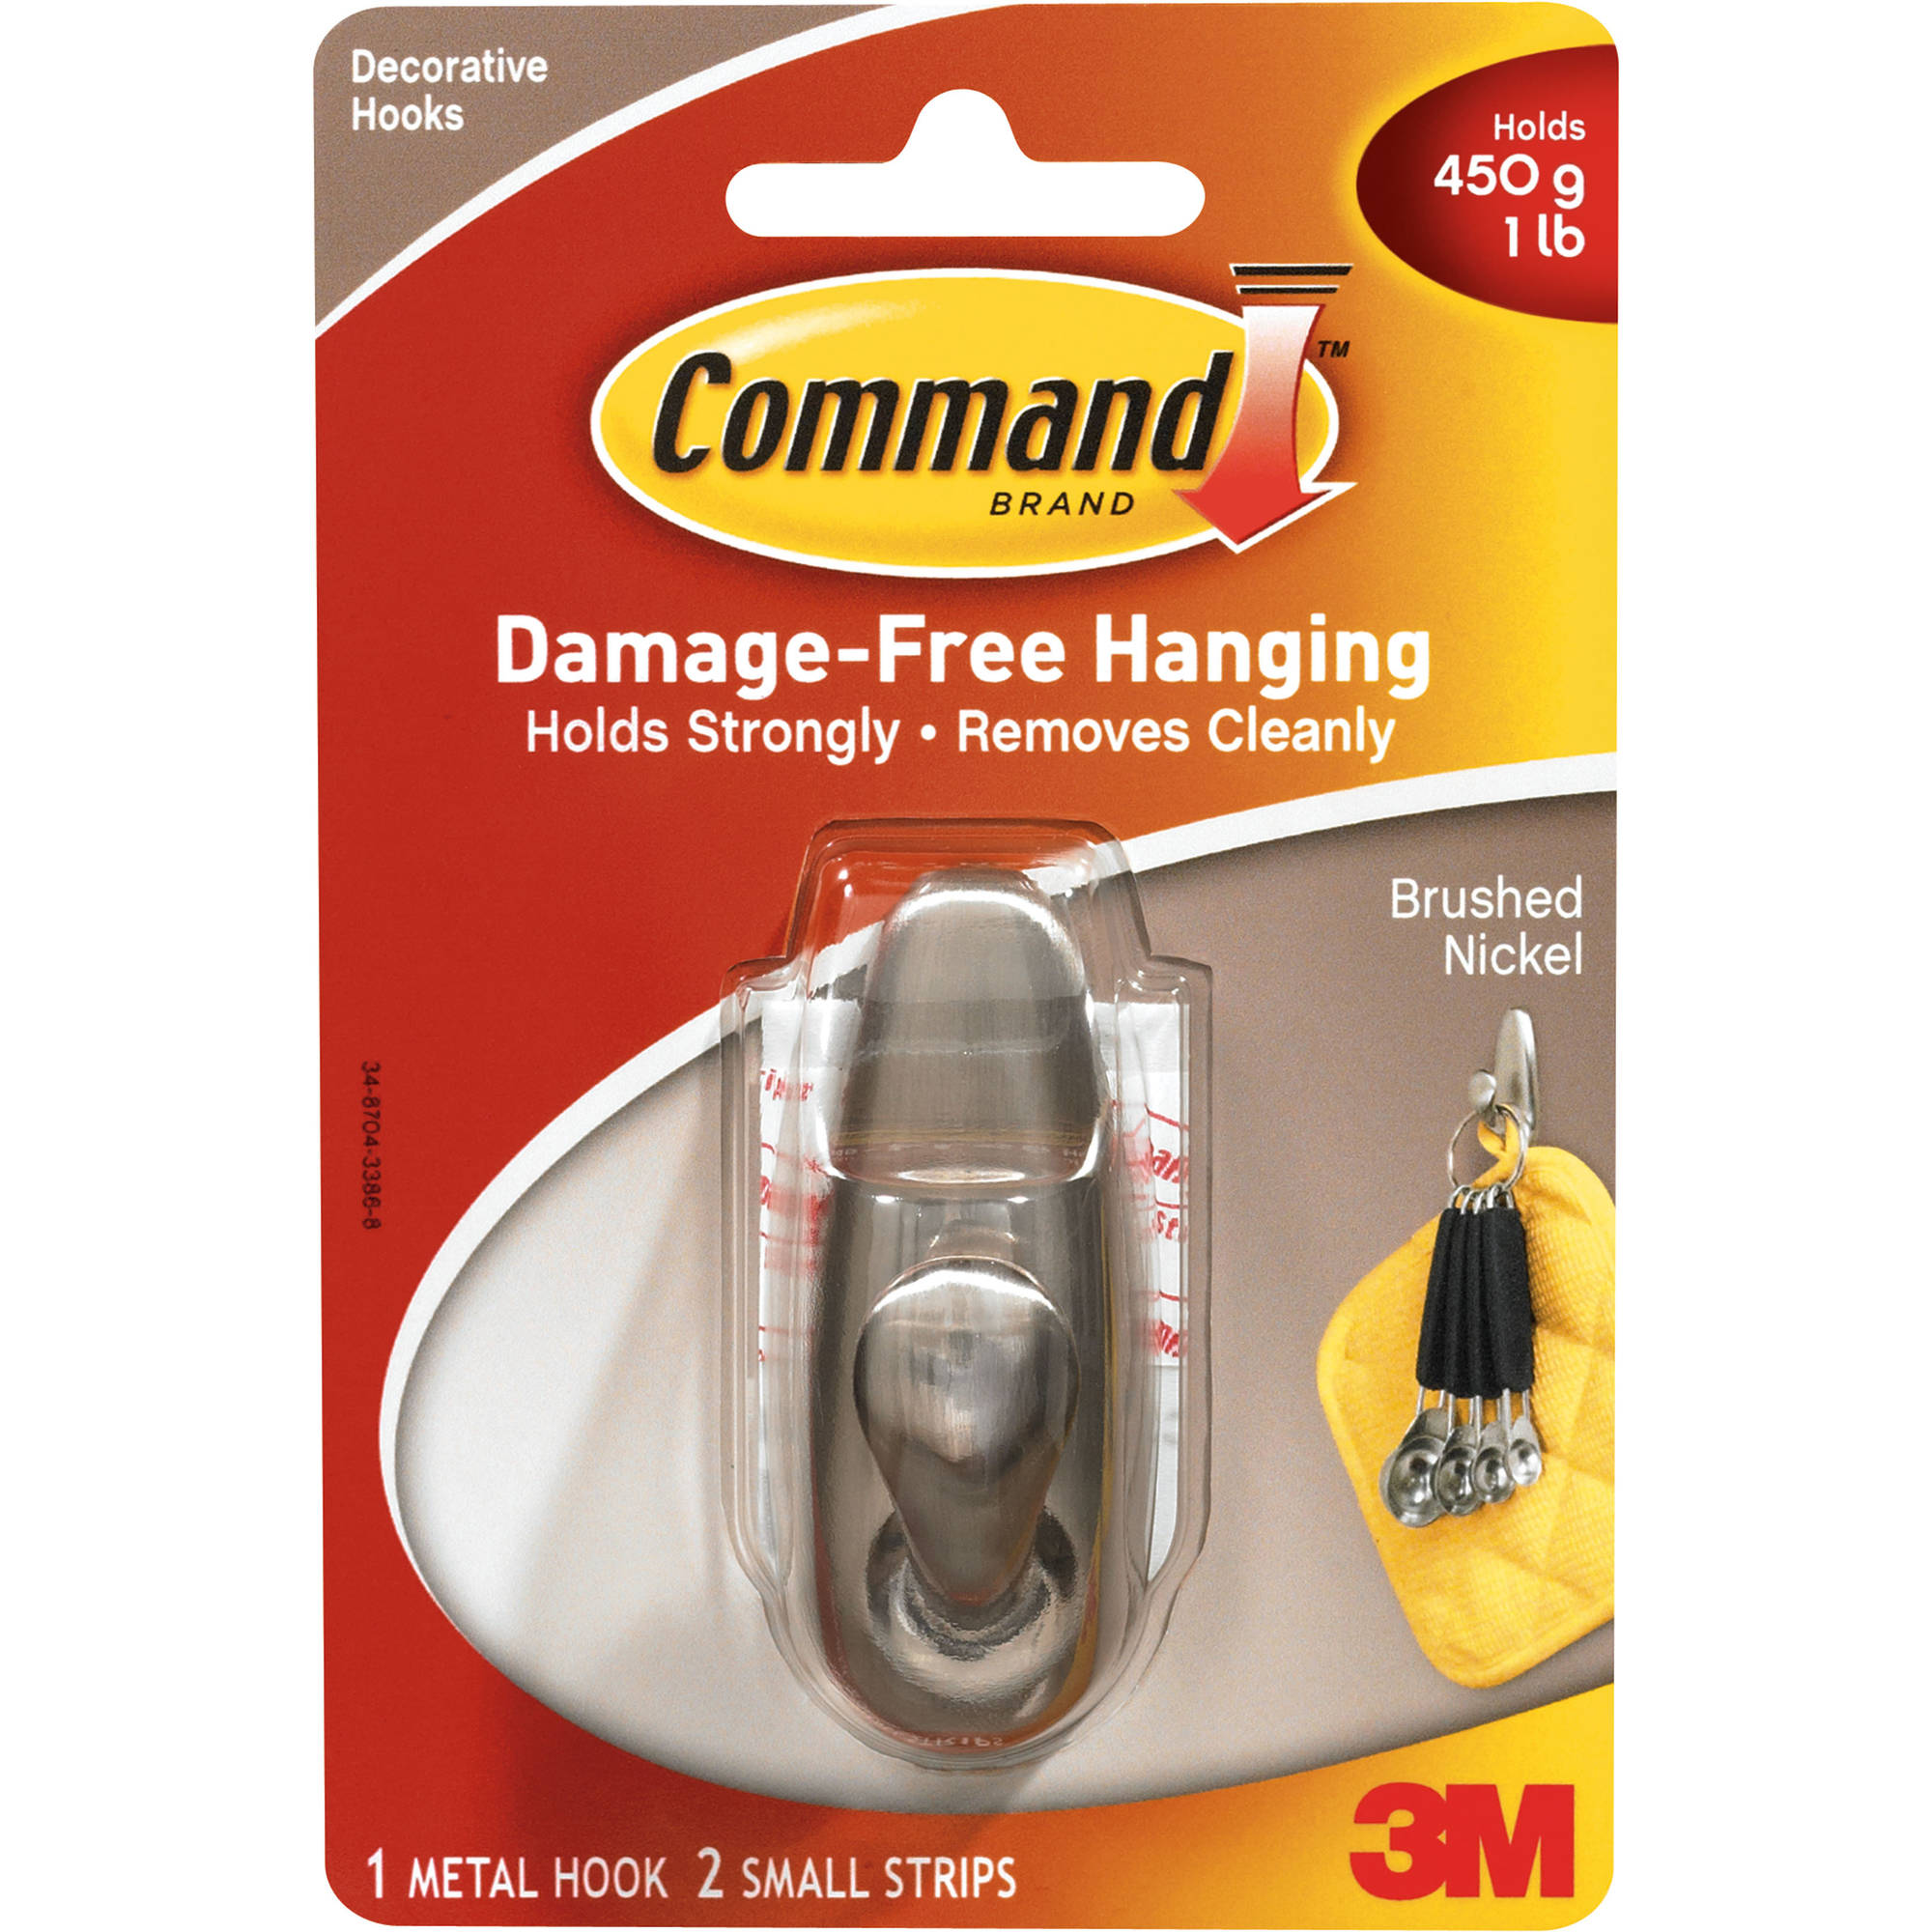 Command Small Forever Classic Hook, Brushed Nickel, 1 Hook, 2 Strips, FC11-BN